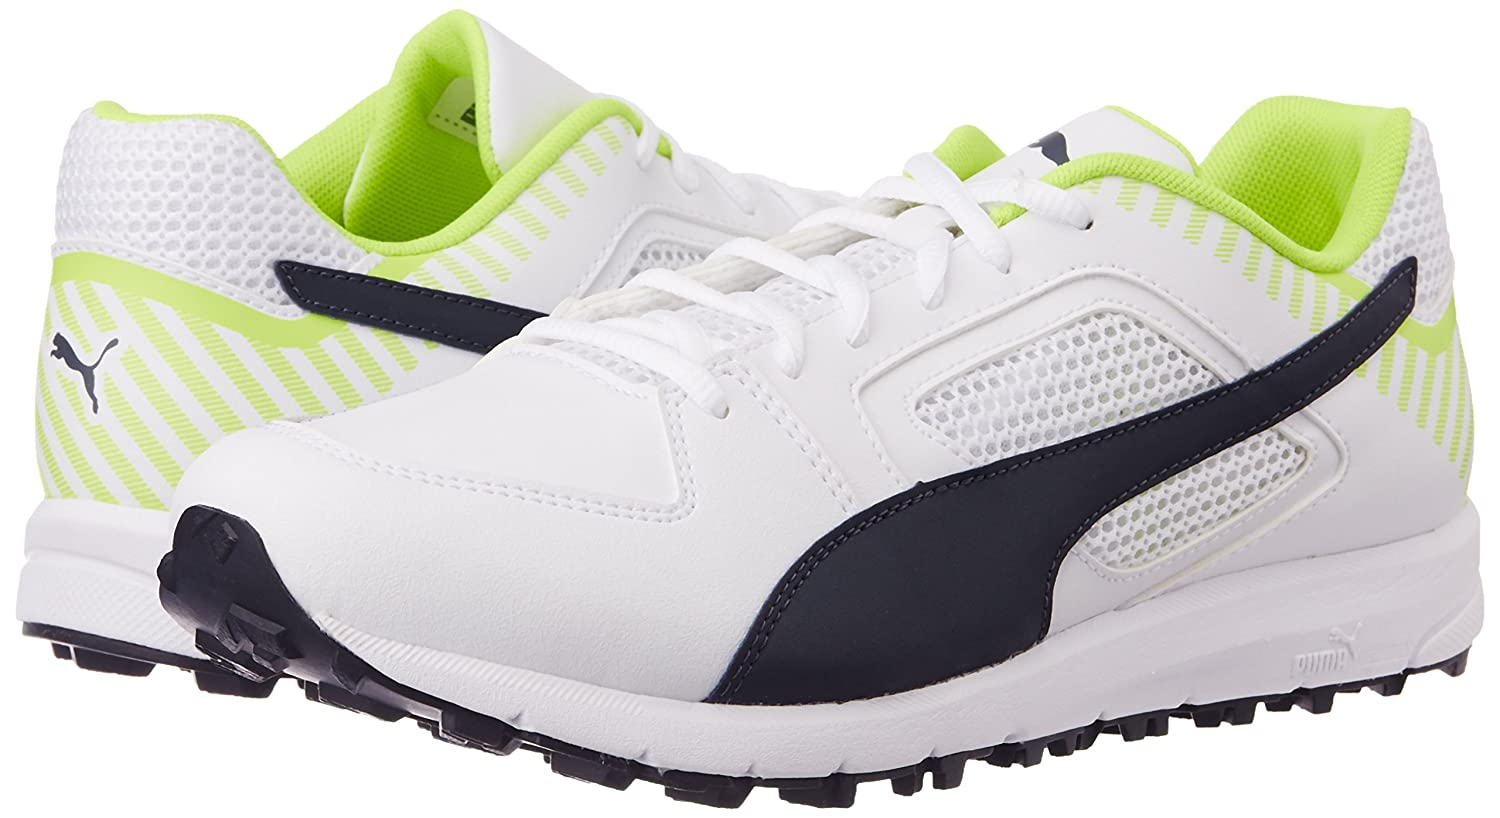 b27be1be379c1 Amazon.com : PUMA Team Rubber Cricket Shoes US 9- UK 8 : Sports ...